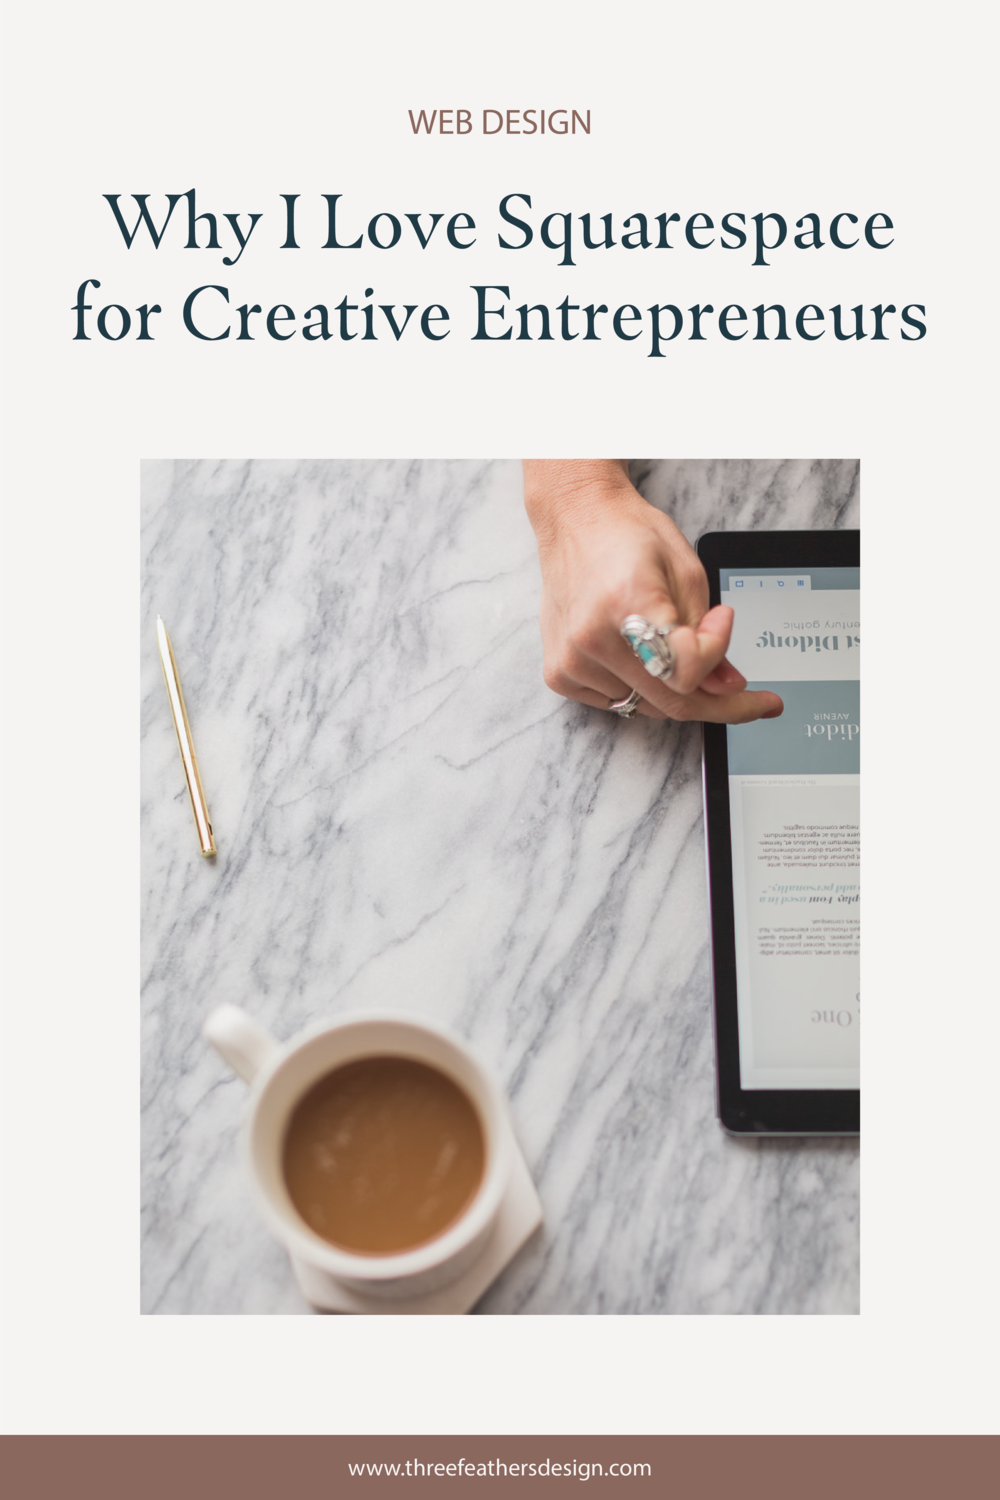 I Recently Made The Decision To Stop Watering Down My Web Design Expertise And Build Websites For My Client In 2020 Squarespace Tutorial Squarespace Squarespace Design